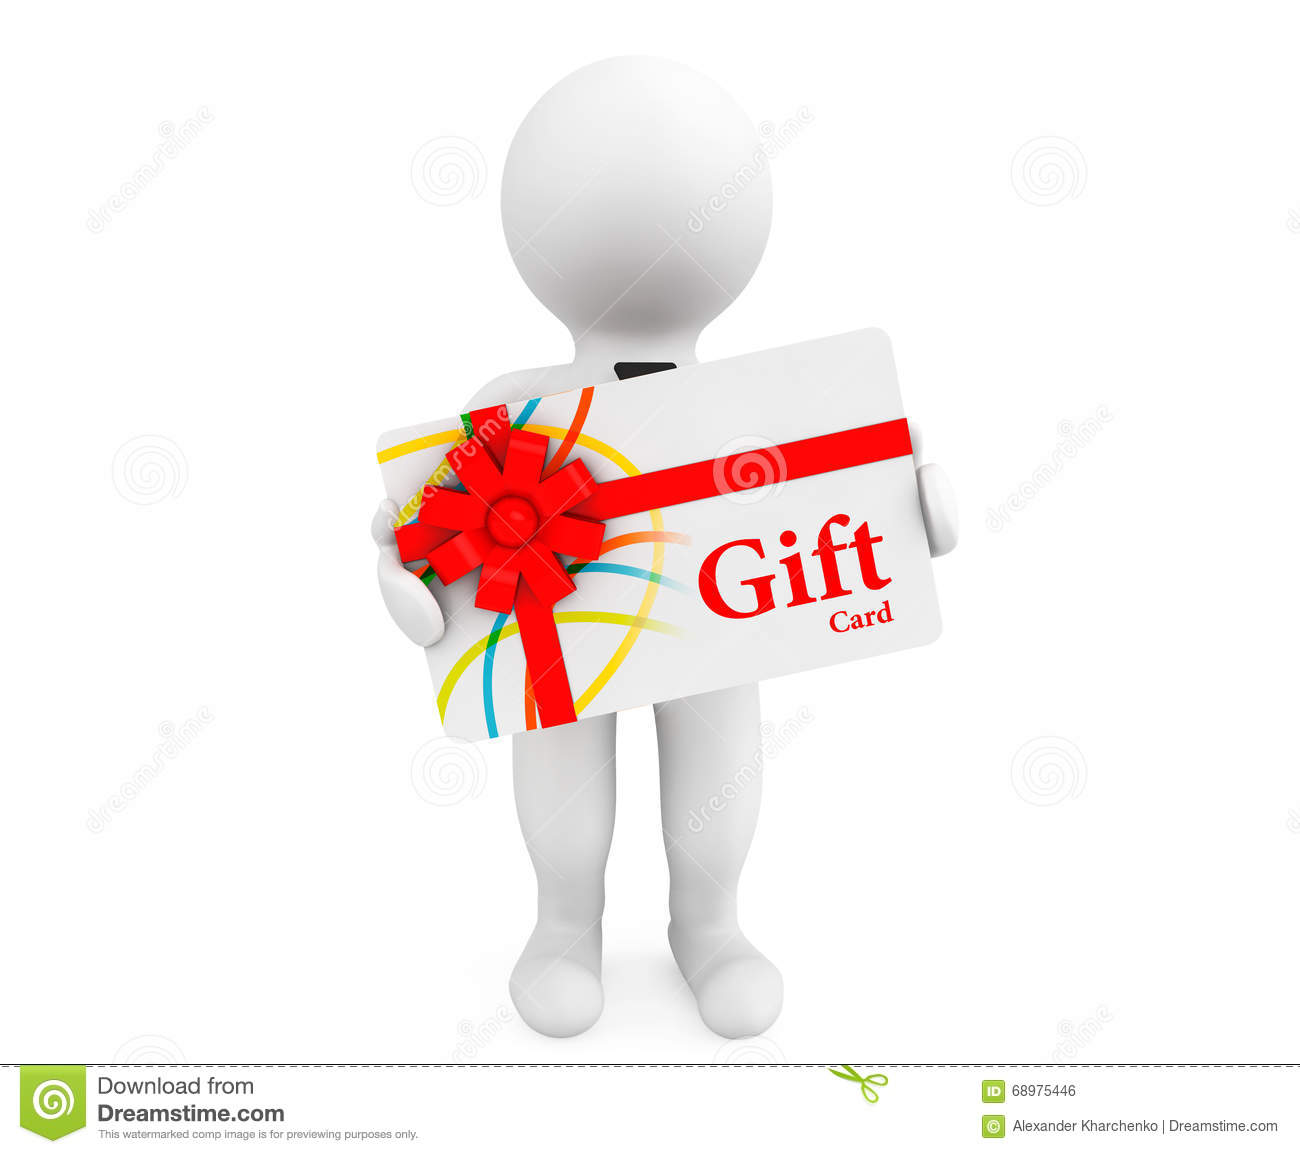 Gift card stock photos royalty free images 3d person with a gift card on a white background royalty free stock image negle Gallery